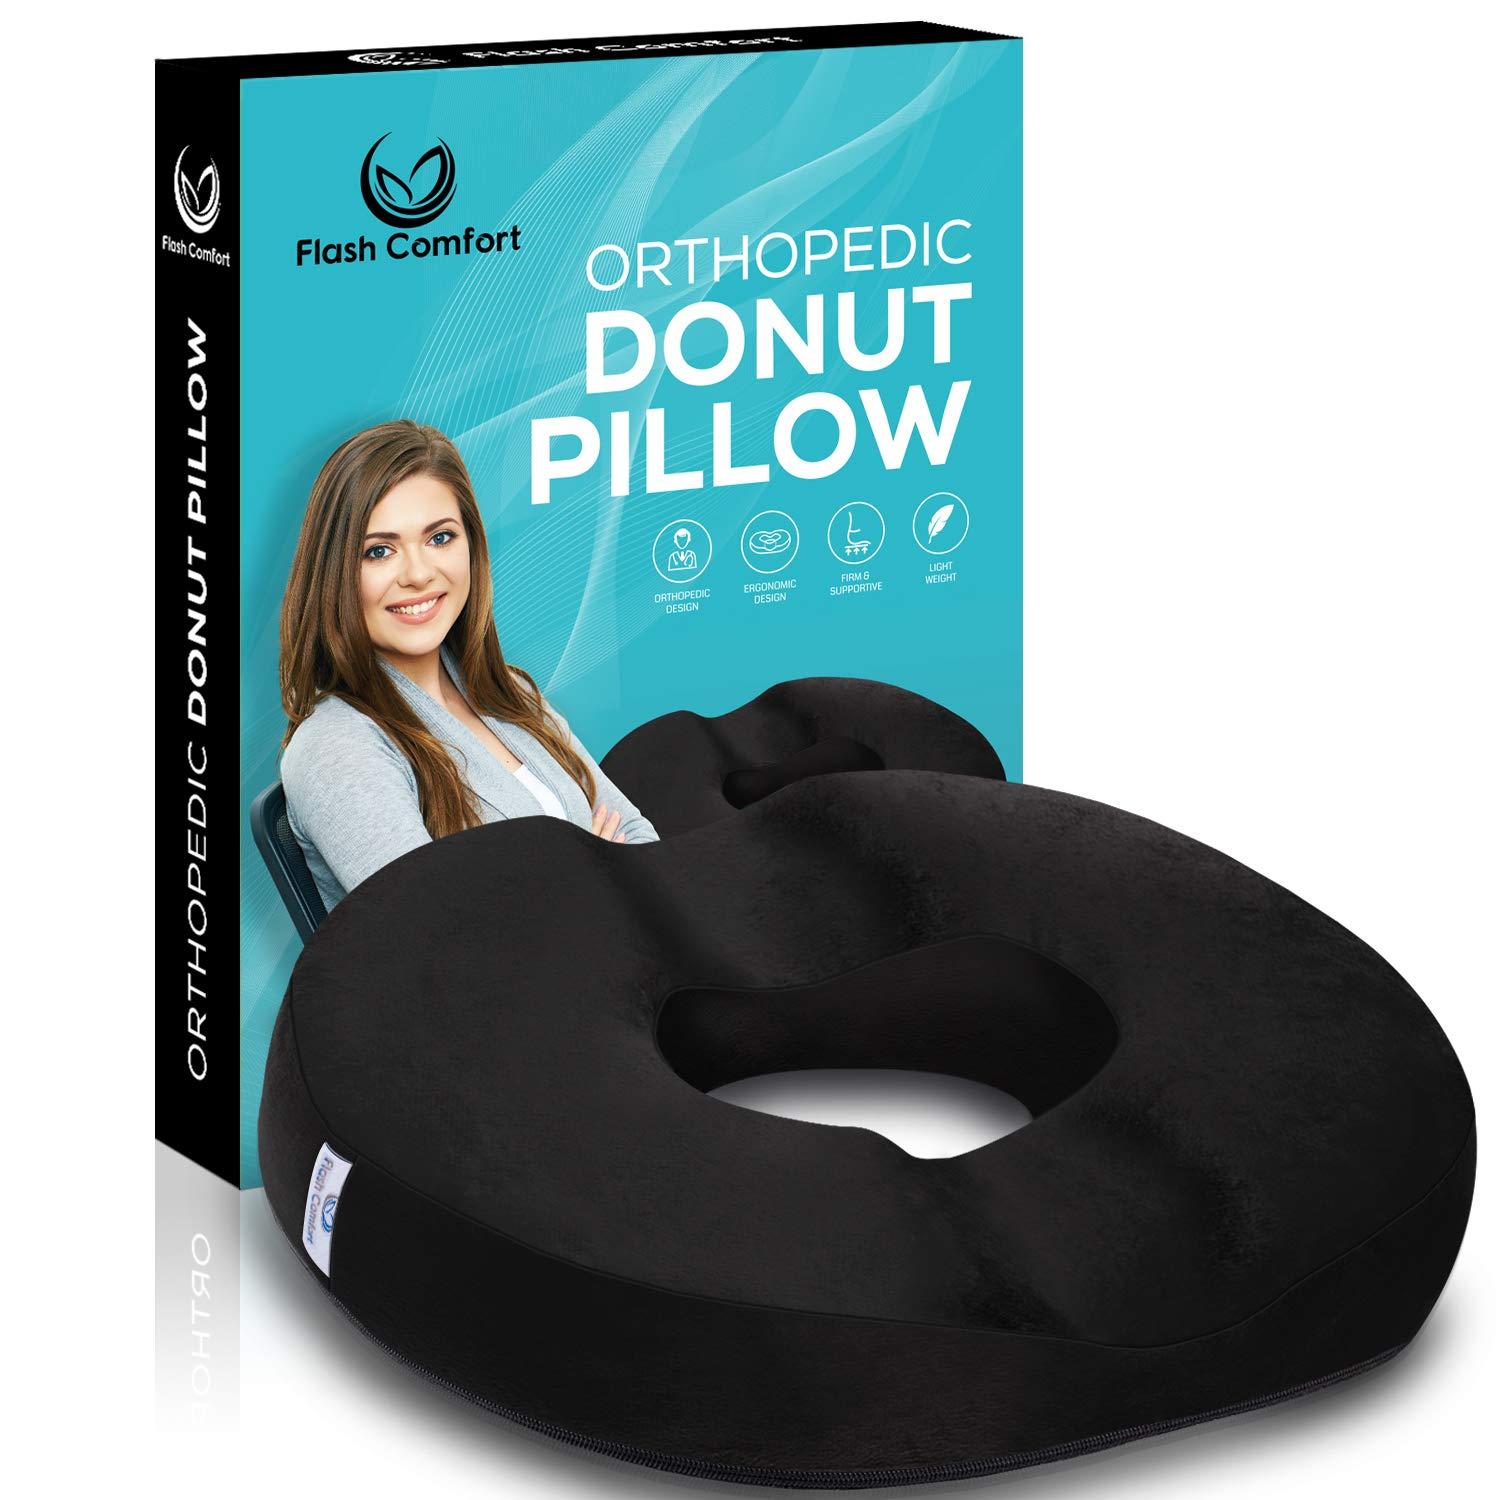 Luxury Donut Tailbone and Coccyx Pillow | Medical Firm Sitting Seat Cushion | Relief from Hemorrhoids, Prostate, Back Pain, Post Natal Orthopedic Surgery, Pregnancy and More | 100% Luxury Memory Foam by Flash Comfort